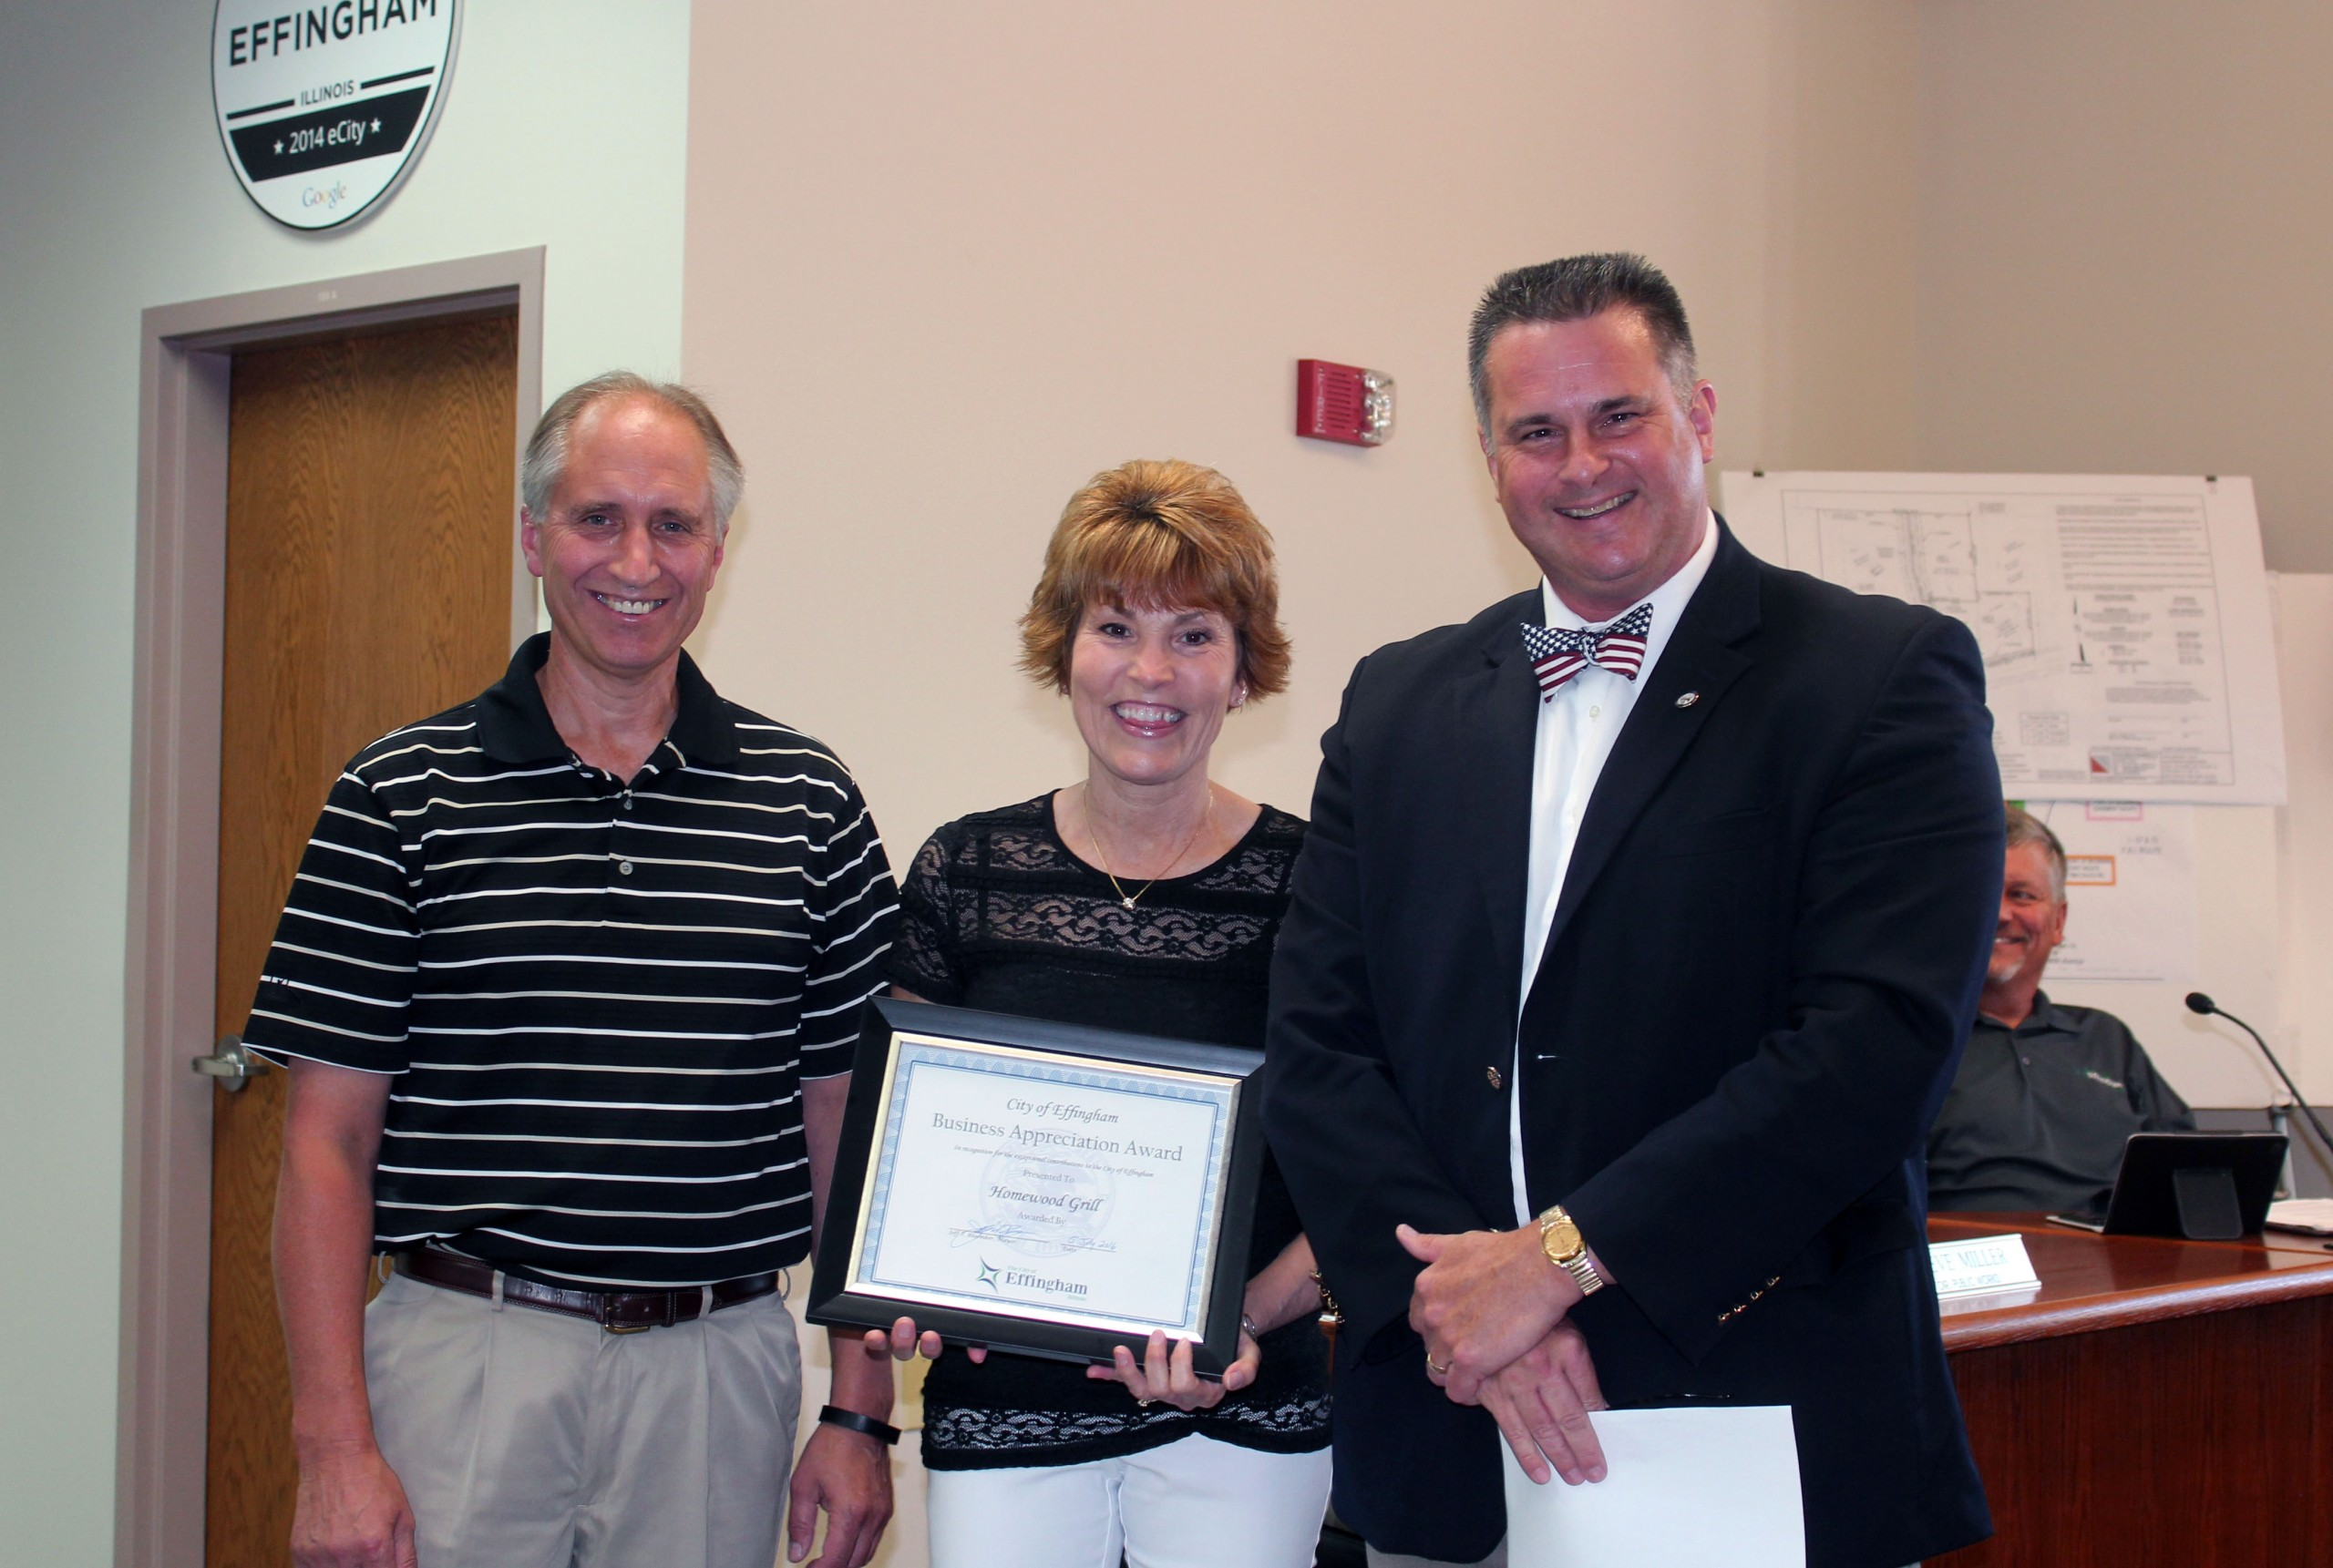 Homewood Grill Presented with Effingham's Business Appreciation Award